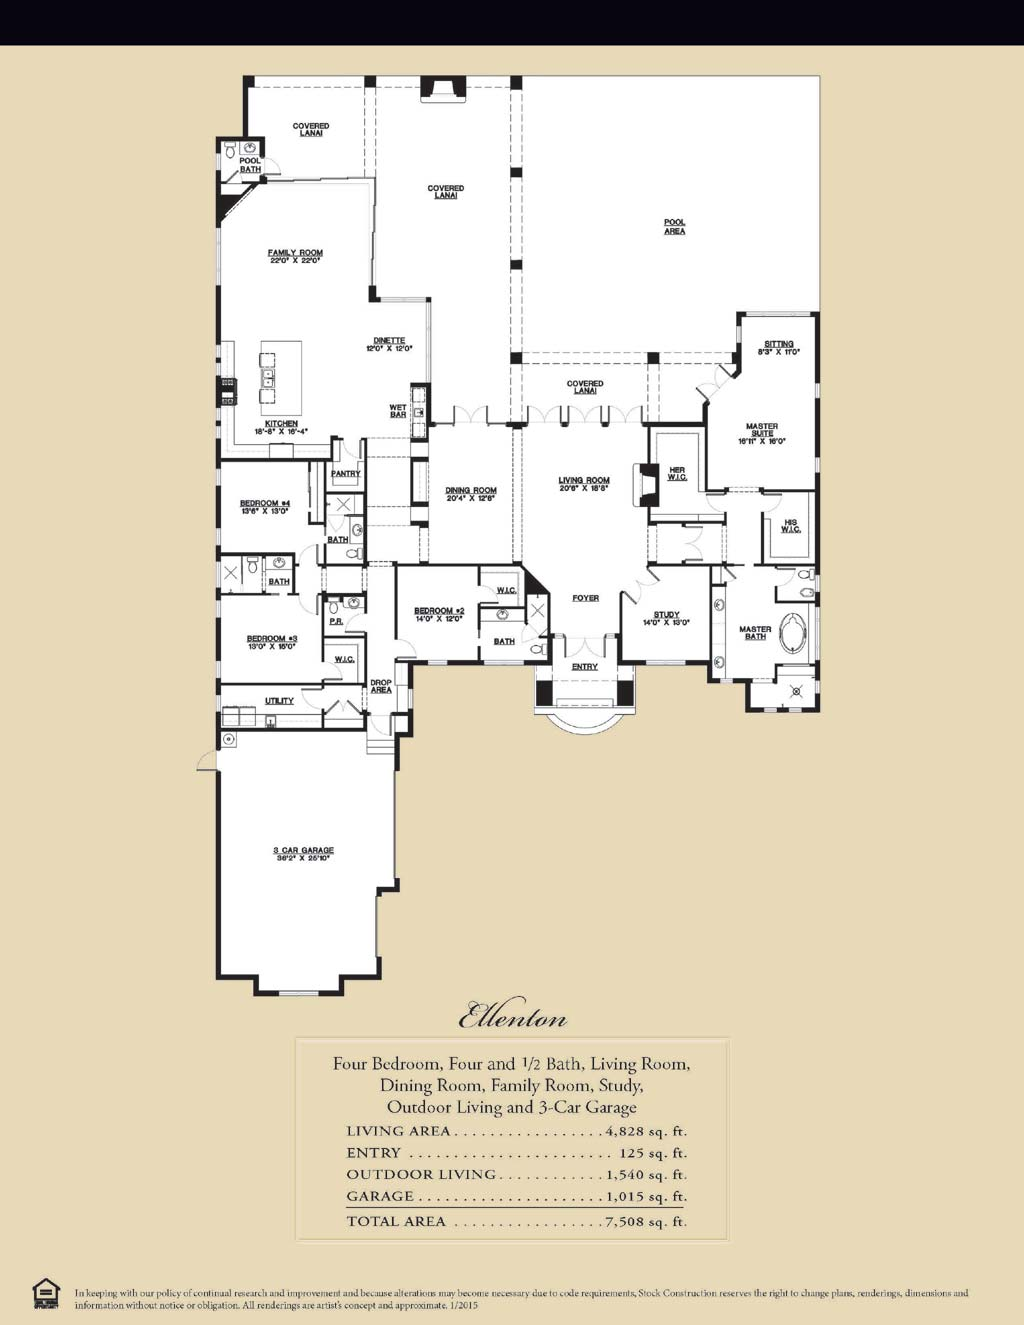 Ellenton Floor Plan in Bay Woods, Stock Construction, Four Bedroom, Four and 1/2 Bath, Living Room, Dining Room, Family Room, Study, Outdoor Living and 3-Car Garage